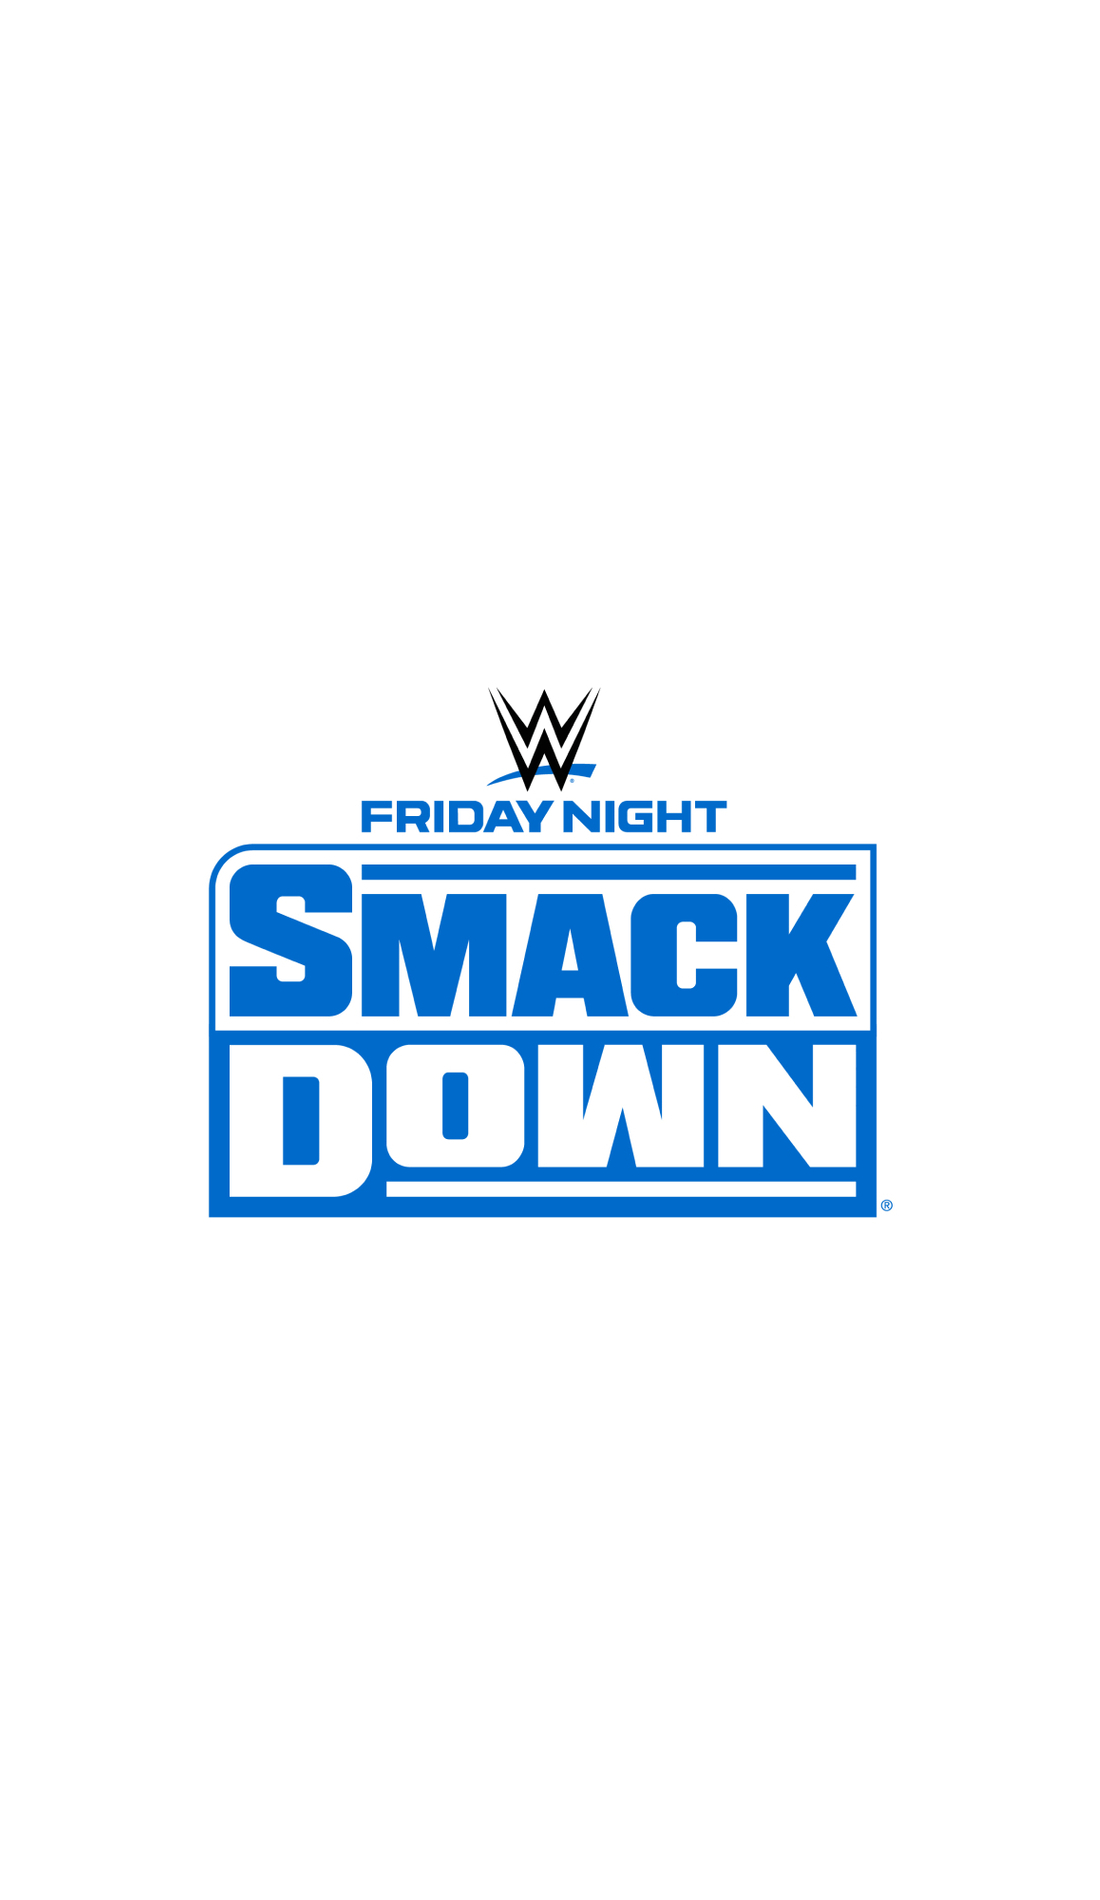 A WWE Friday Night Smackdown live event